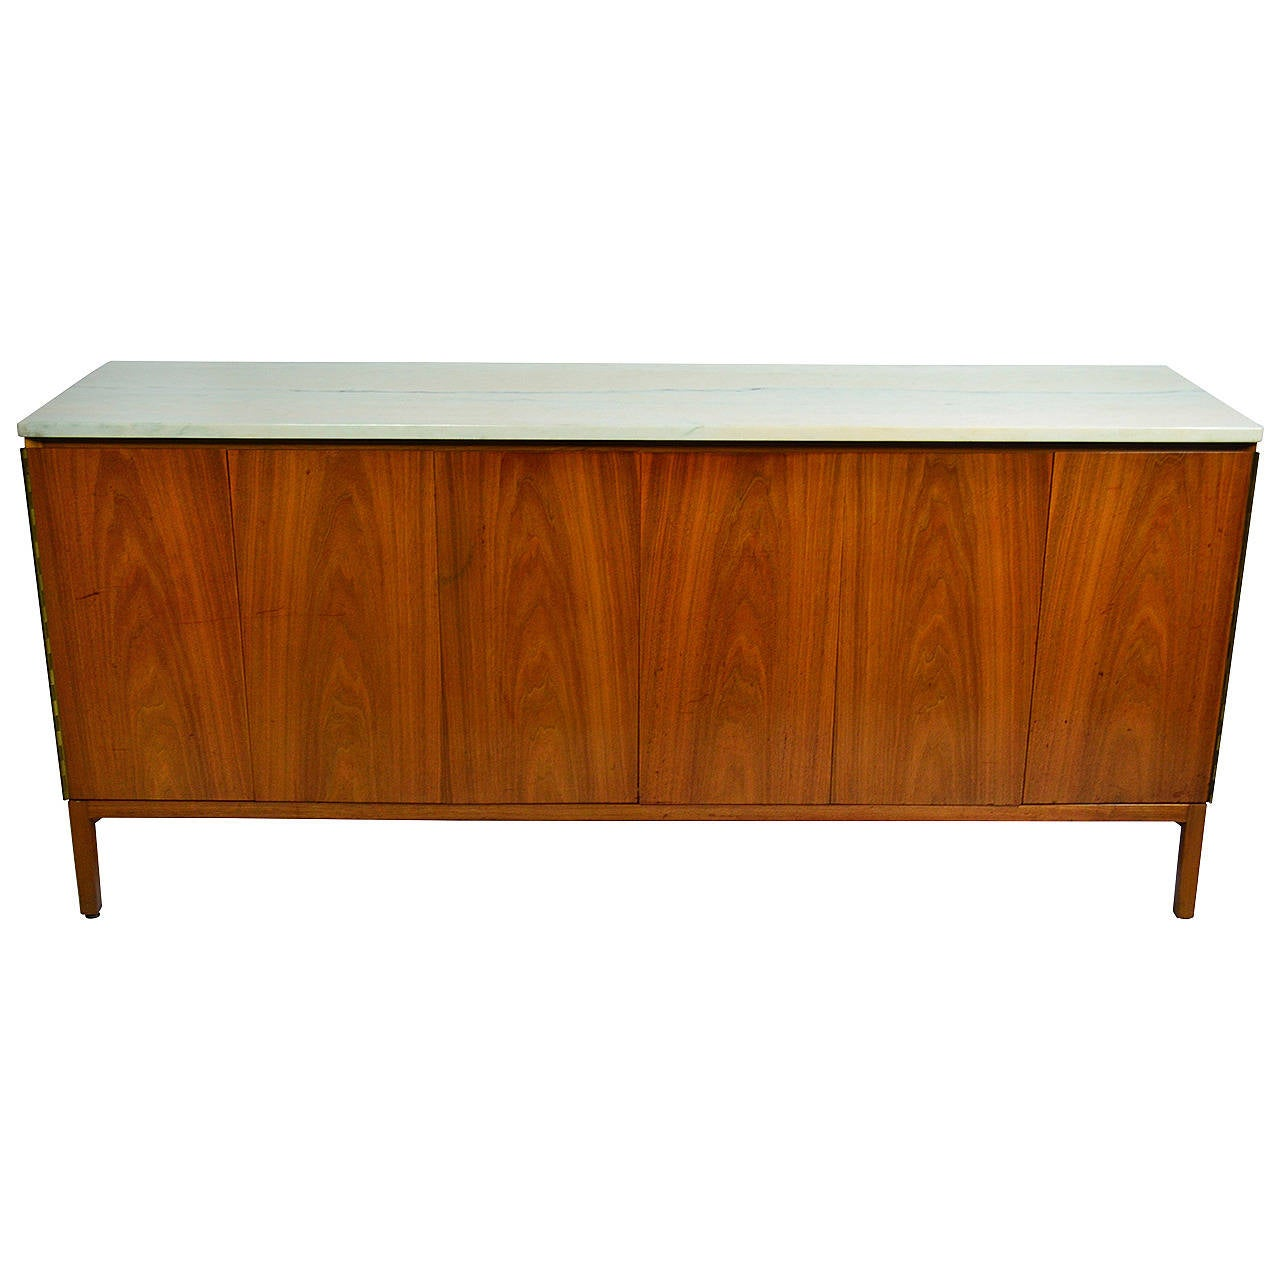 Paul McCobb Irwin for Calvin Furniture Eight-Drawer Dresser Marble Top, 1950s